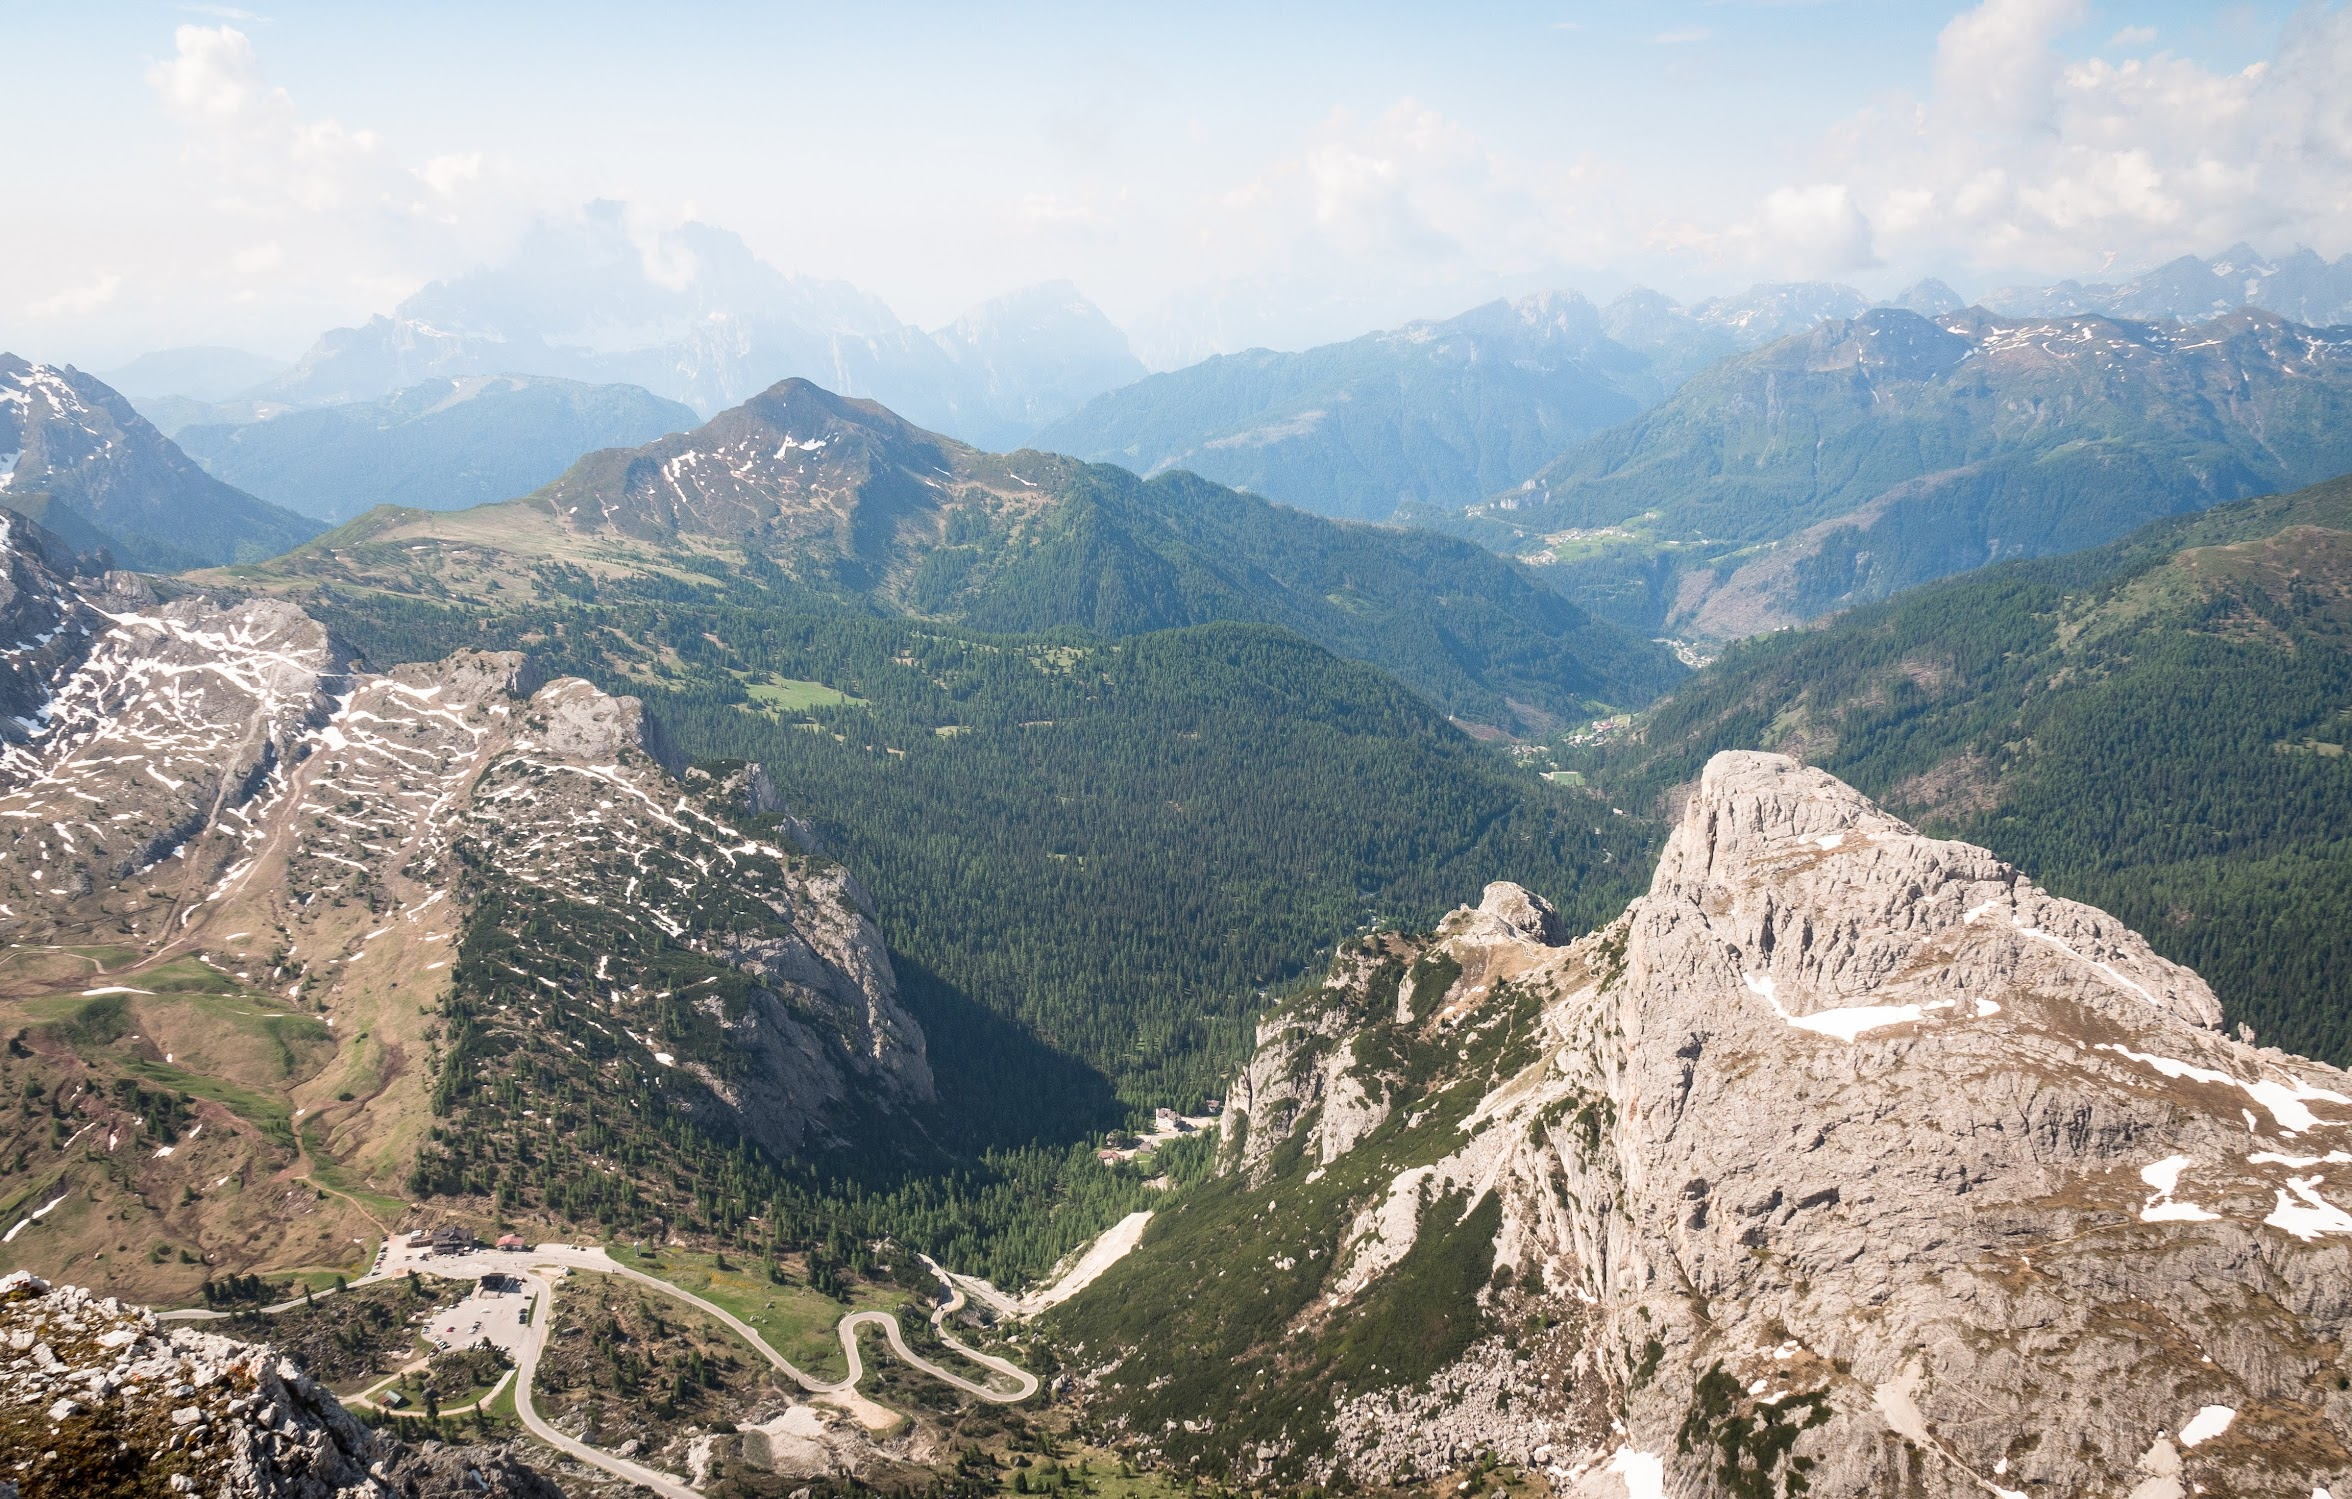 The view over Passo Falzarego